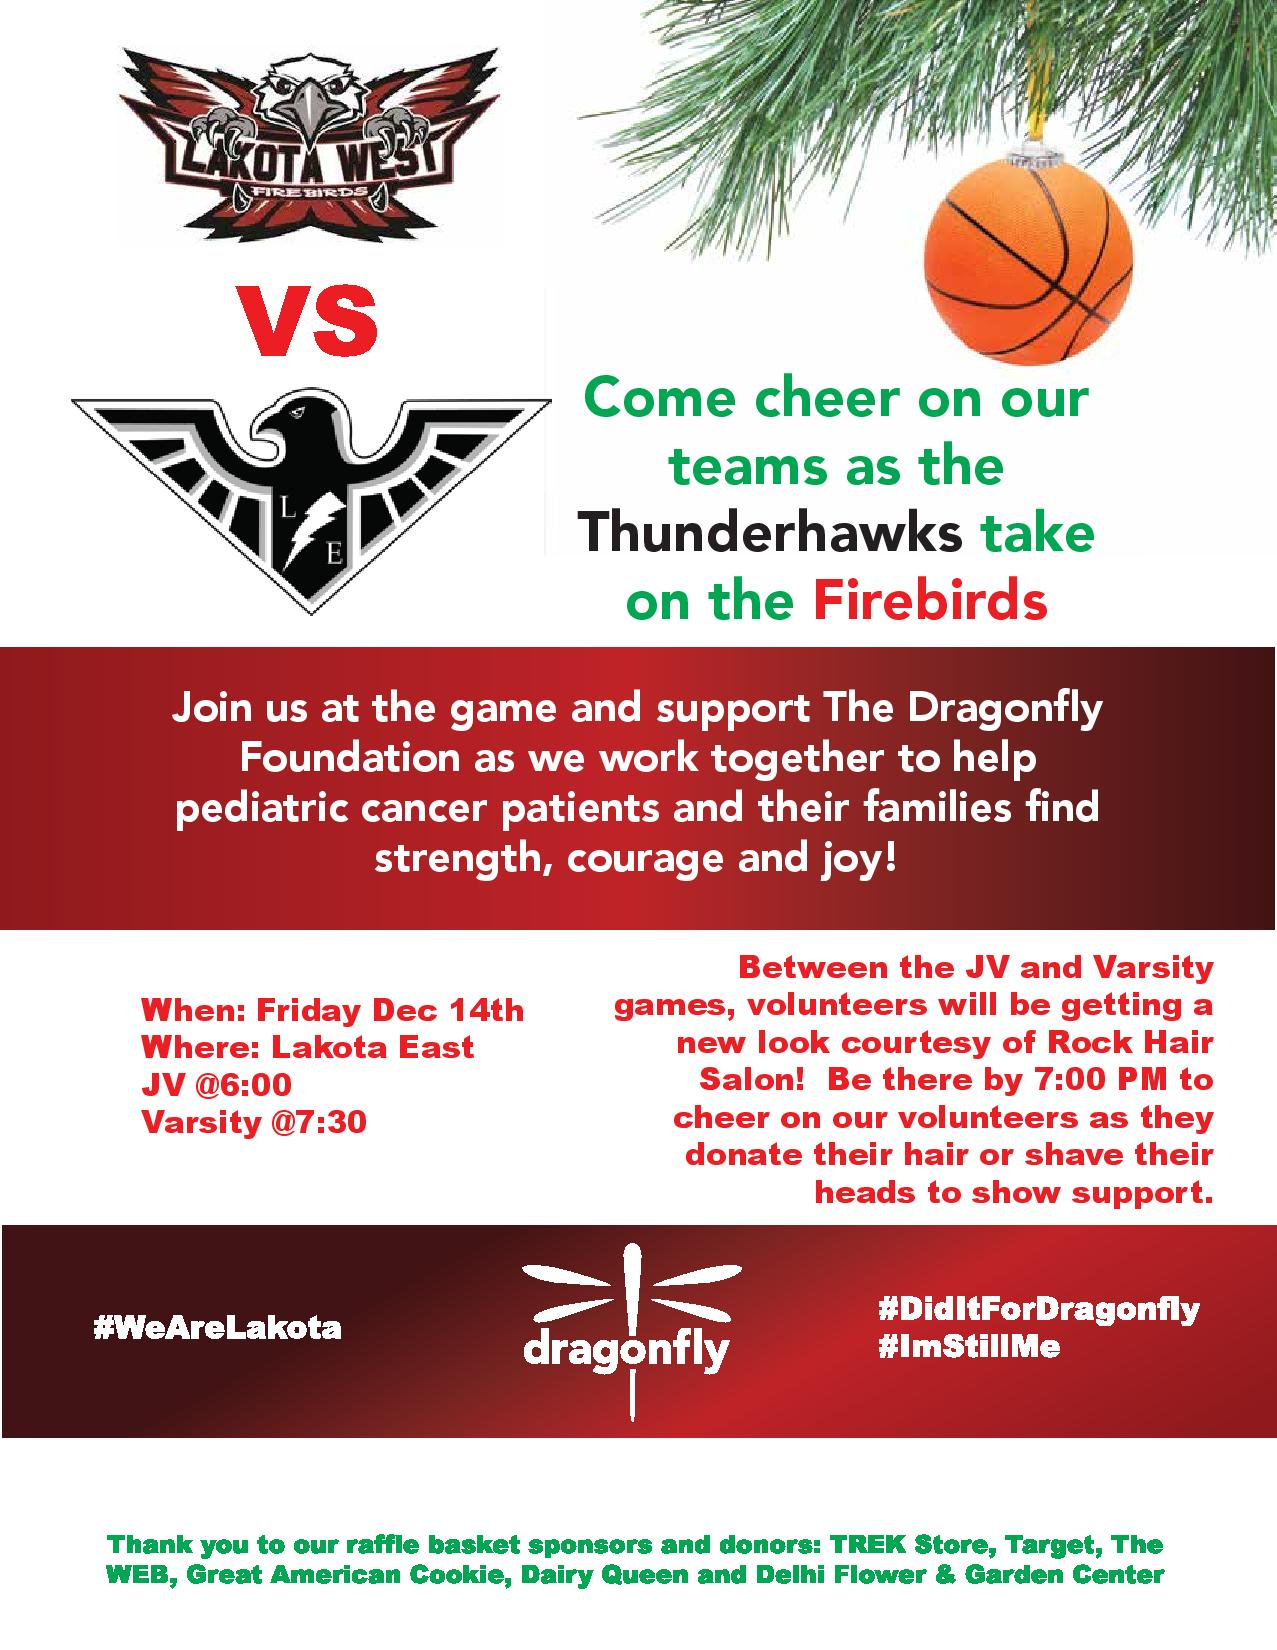 Holiday Hair Donations At Lakota East West Basketball Game The